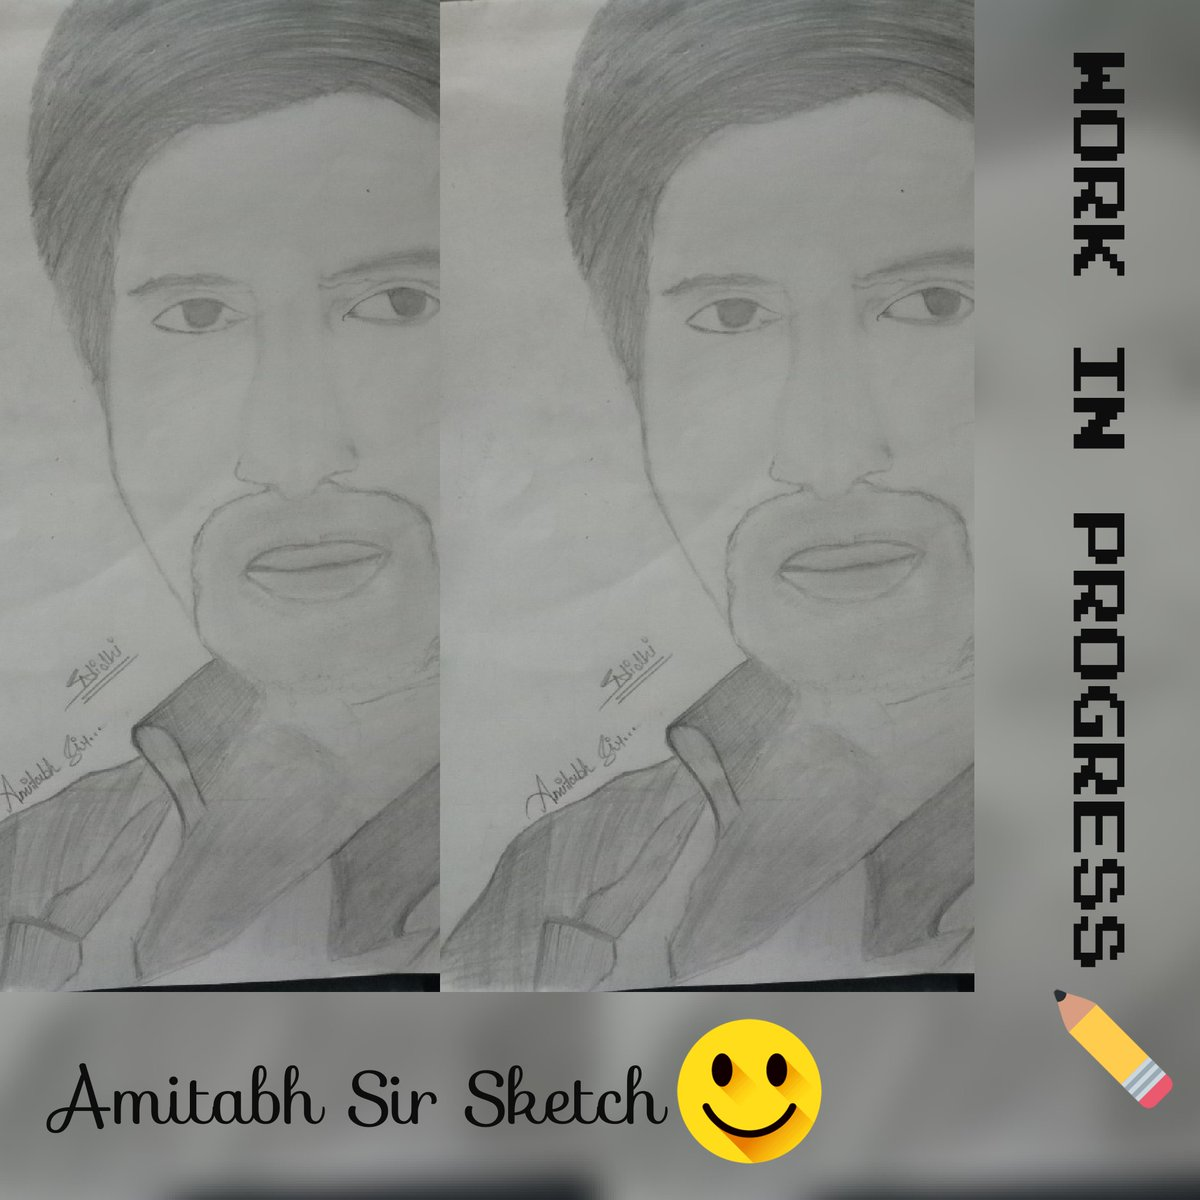 Sketch @SrBachchan  👩‍🎨👩‍🎨  #creative #artist #art_we_inspire #galleryart #artistic_share #arts #simple #artwork #art #prilaga  #ArtLovers  #sketching #sketch #sketched #sketchers #sketchlife #sketches #sketch_daily #sketchaday  #sketcher #AmitabhBachchan #bigb https://t.co/UptKFZGWKM